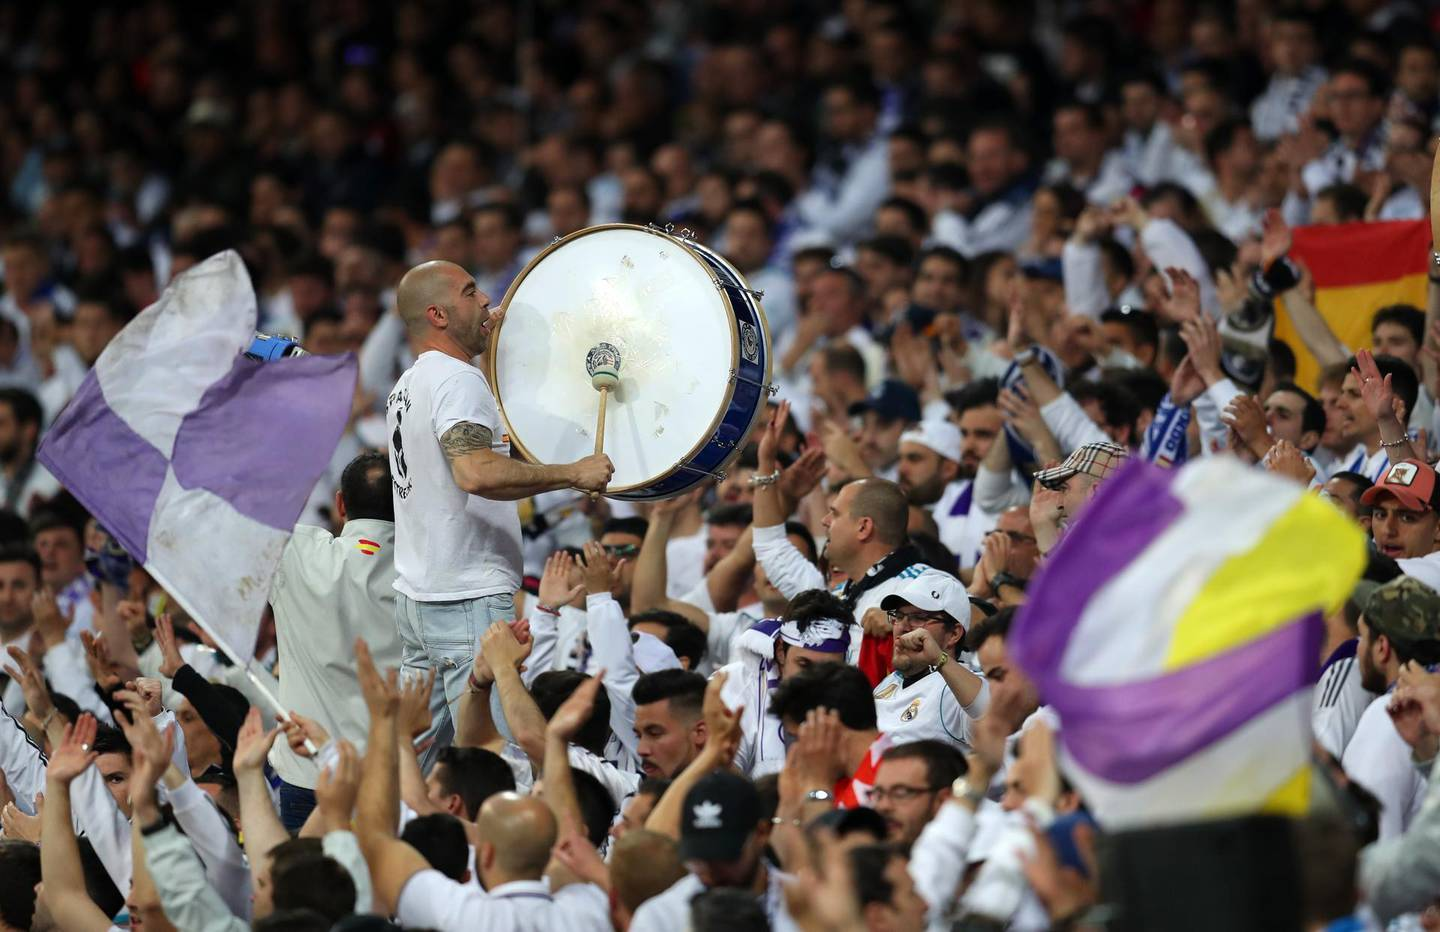 MADRID, SPAIN - MAY 01: Fans of Real Madrid with a drum during the UEFA Champions League Semi Final Second Leg match between Real Madrid and Bayern Muenchen at the Bernabeu on May 1, 2018 in Madrid, Spain. (Photo by Catherine Ivill/Getty Images)